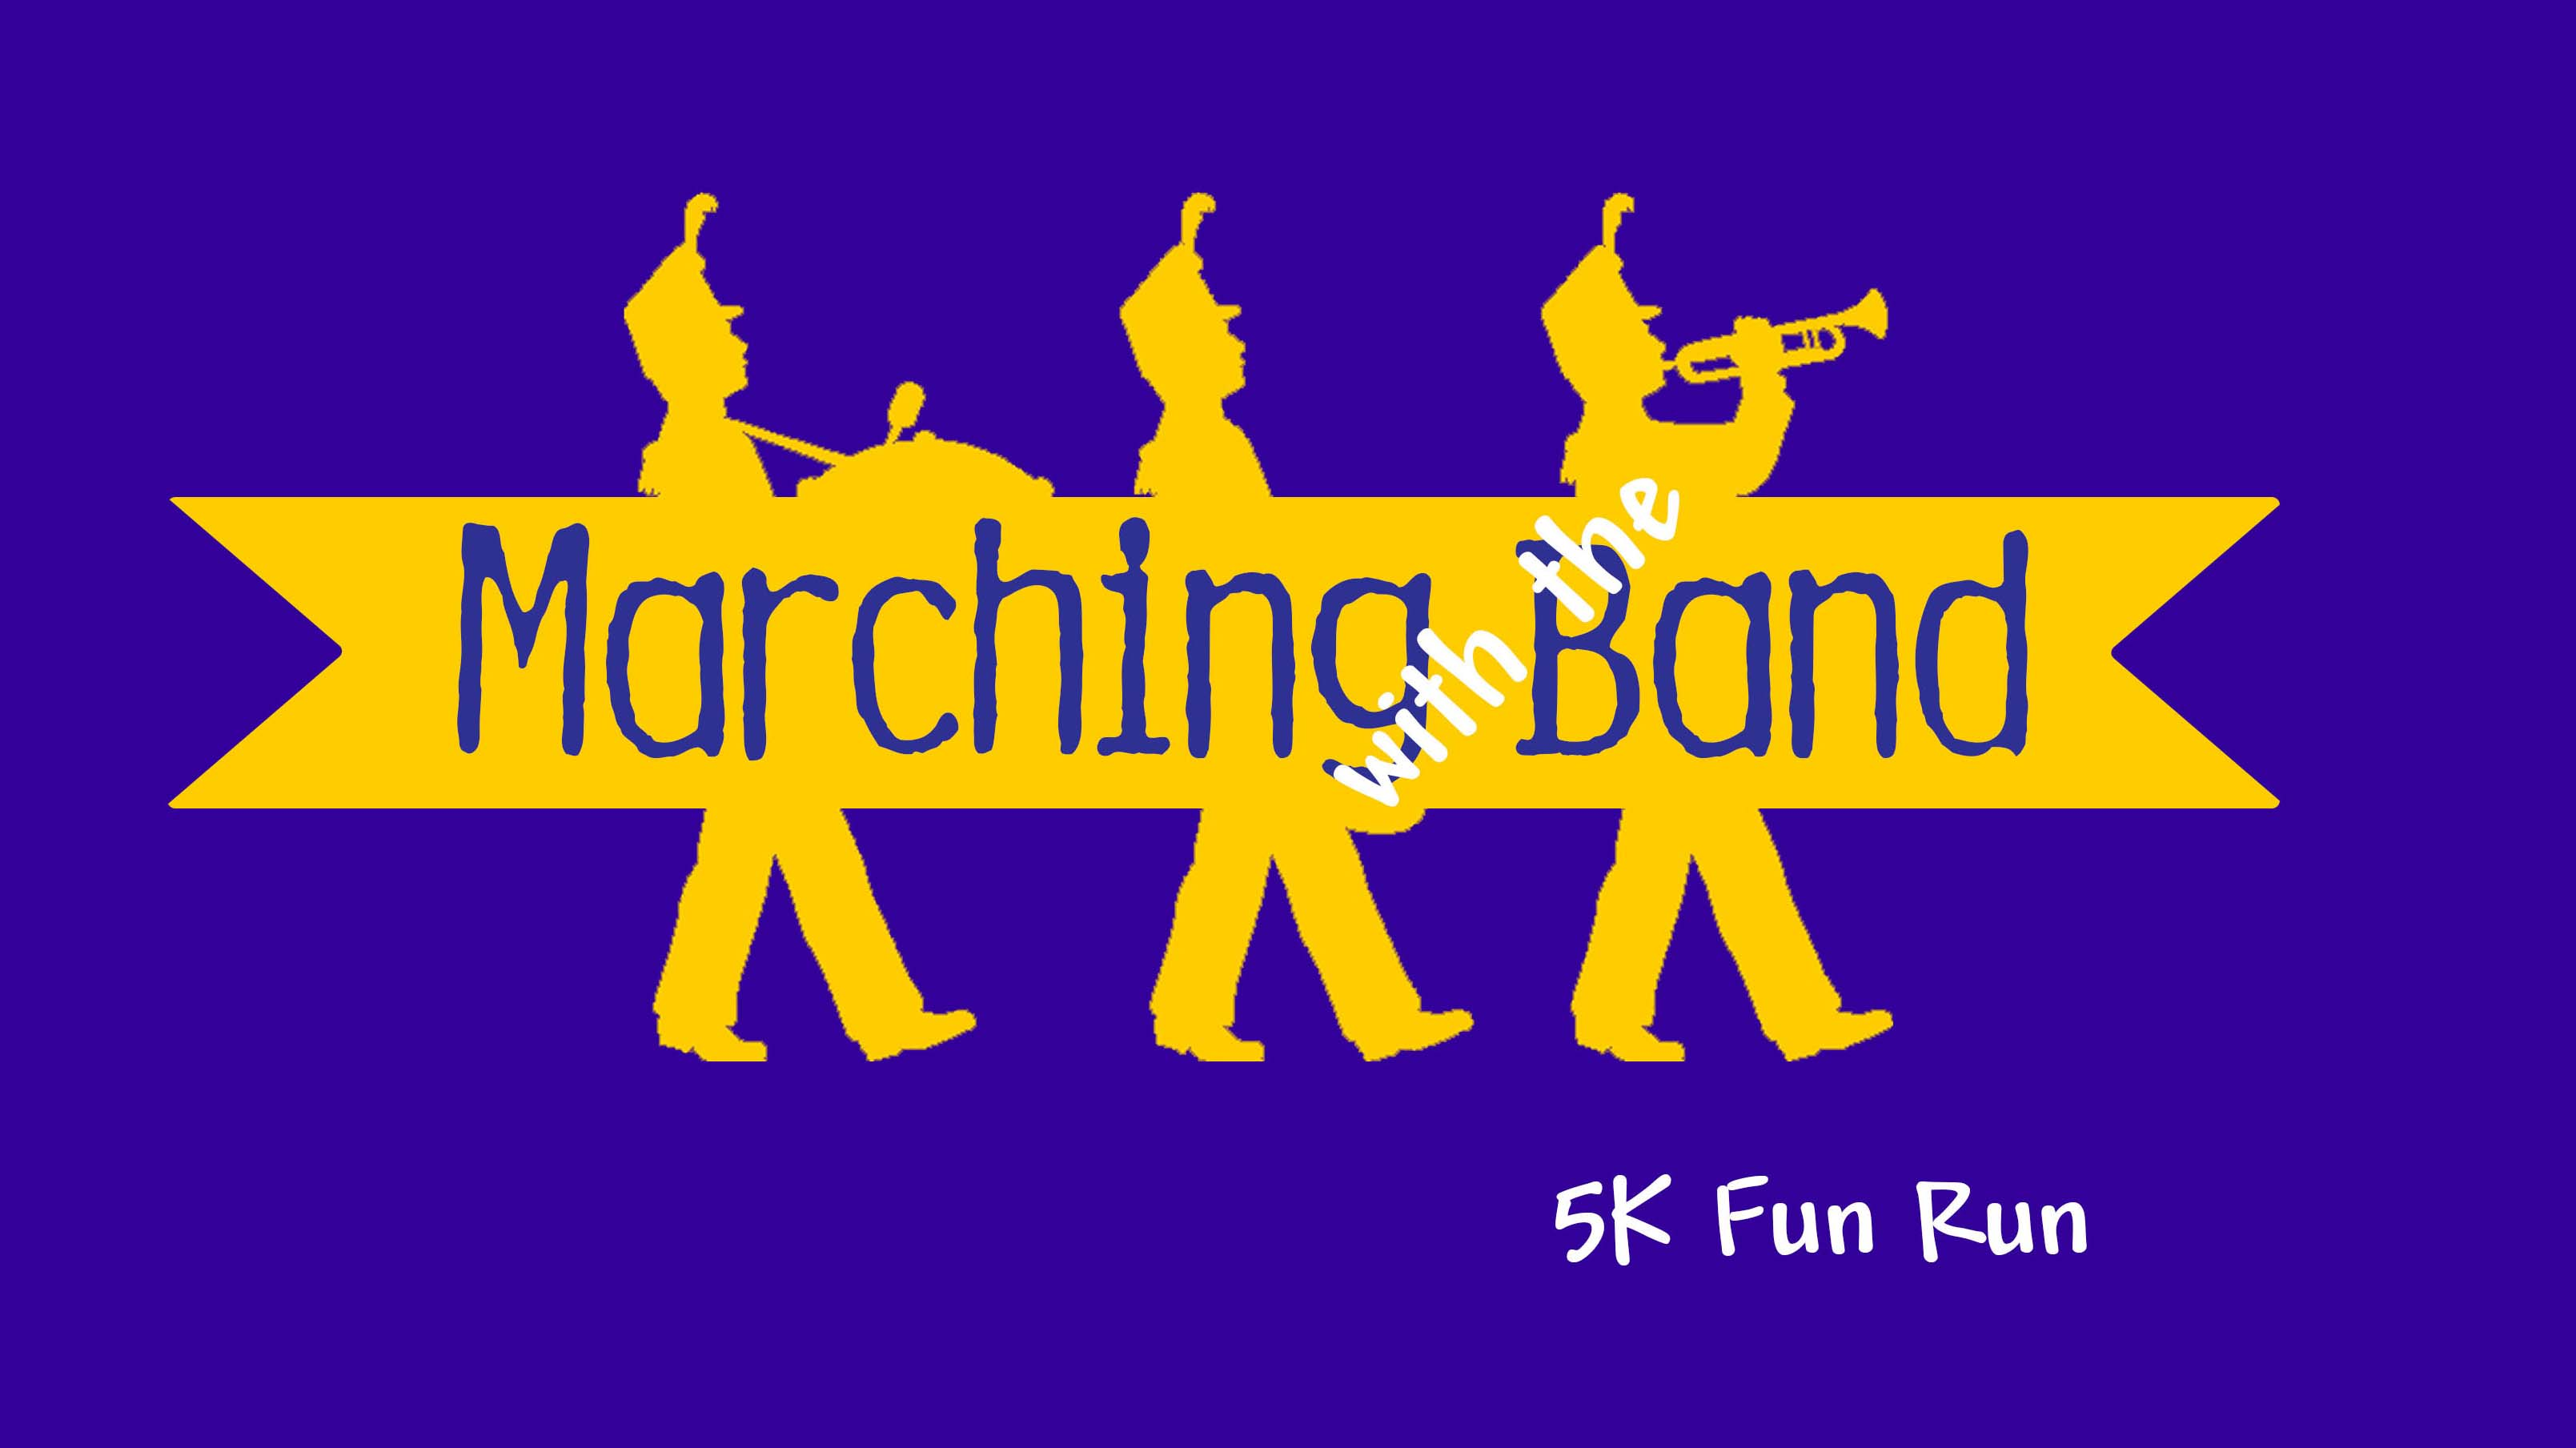 band fun run crop 2